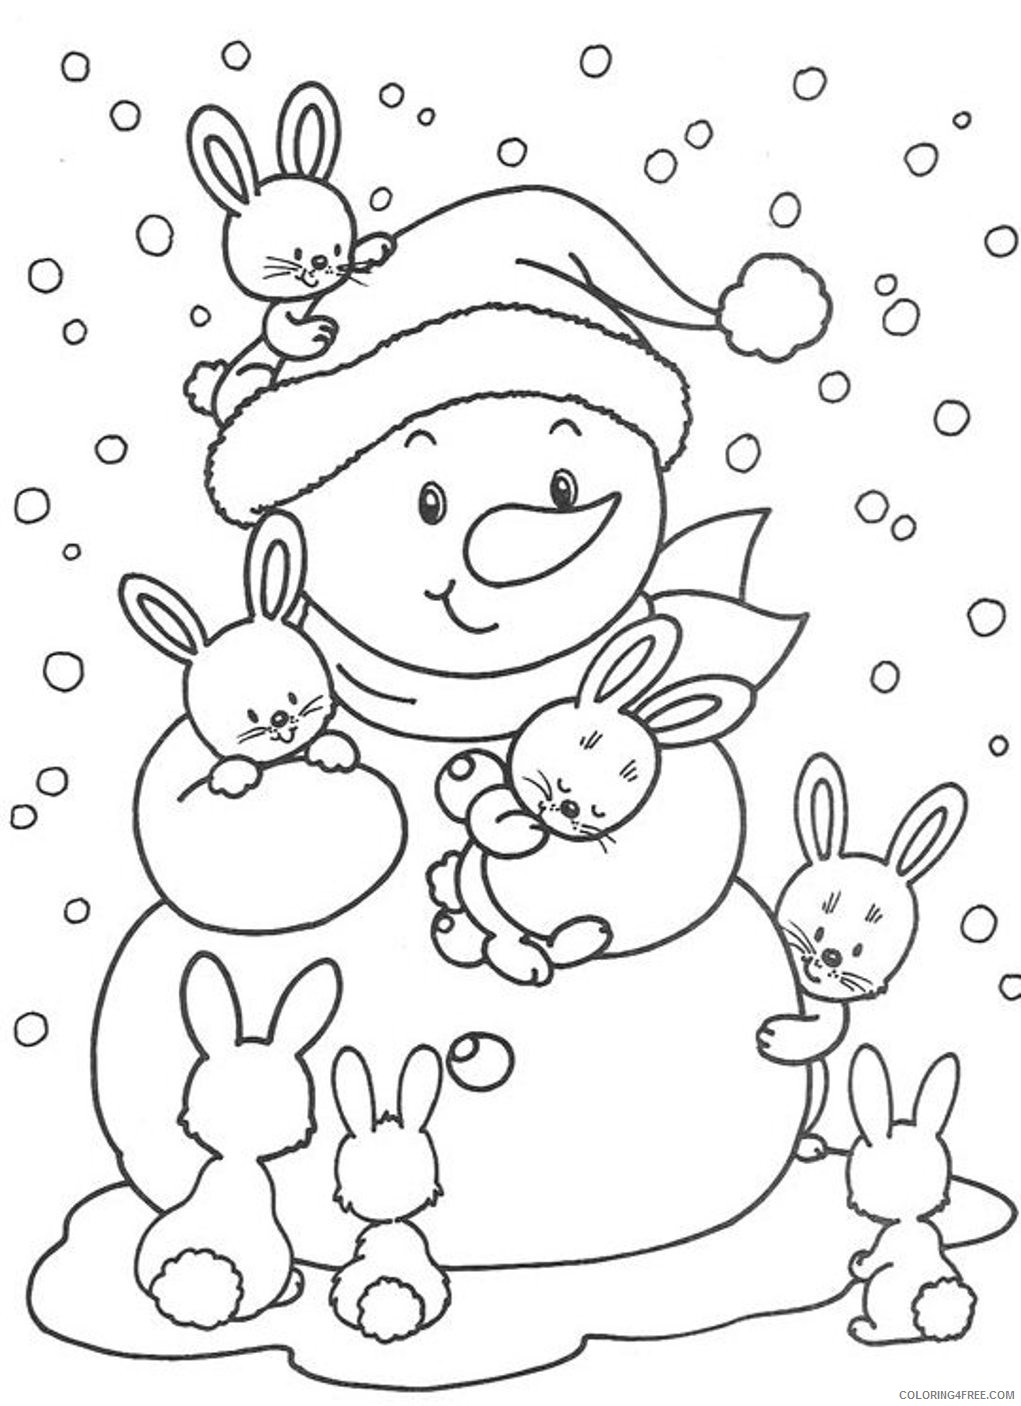 cute winter coloring pages for kids Coloring4free